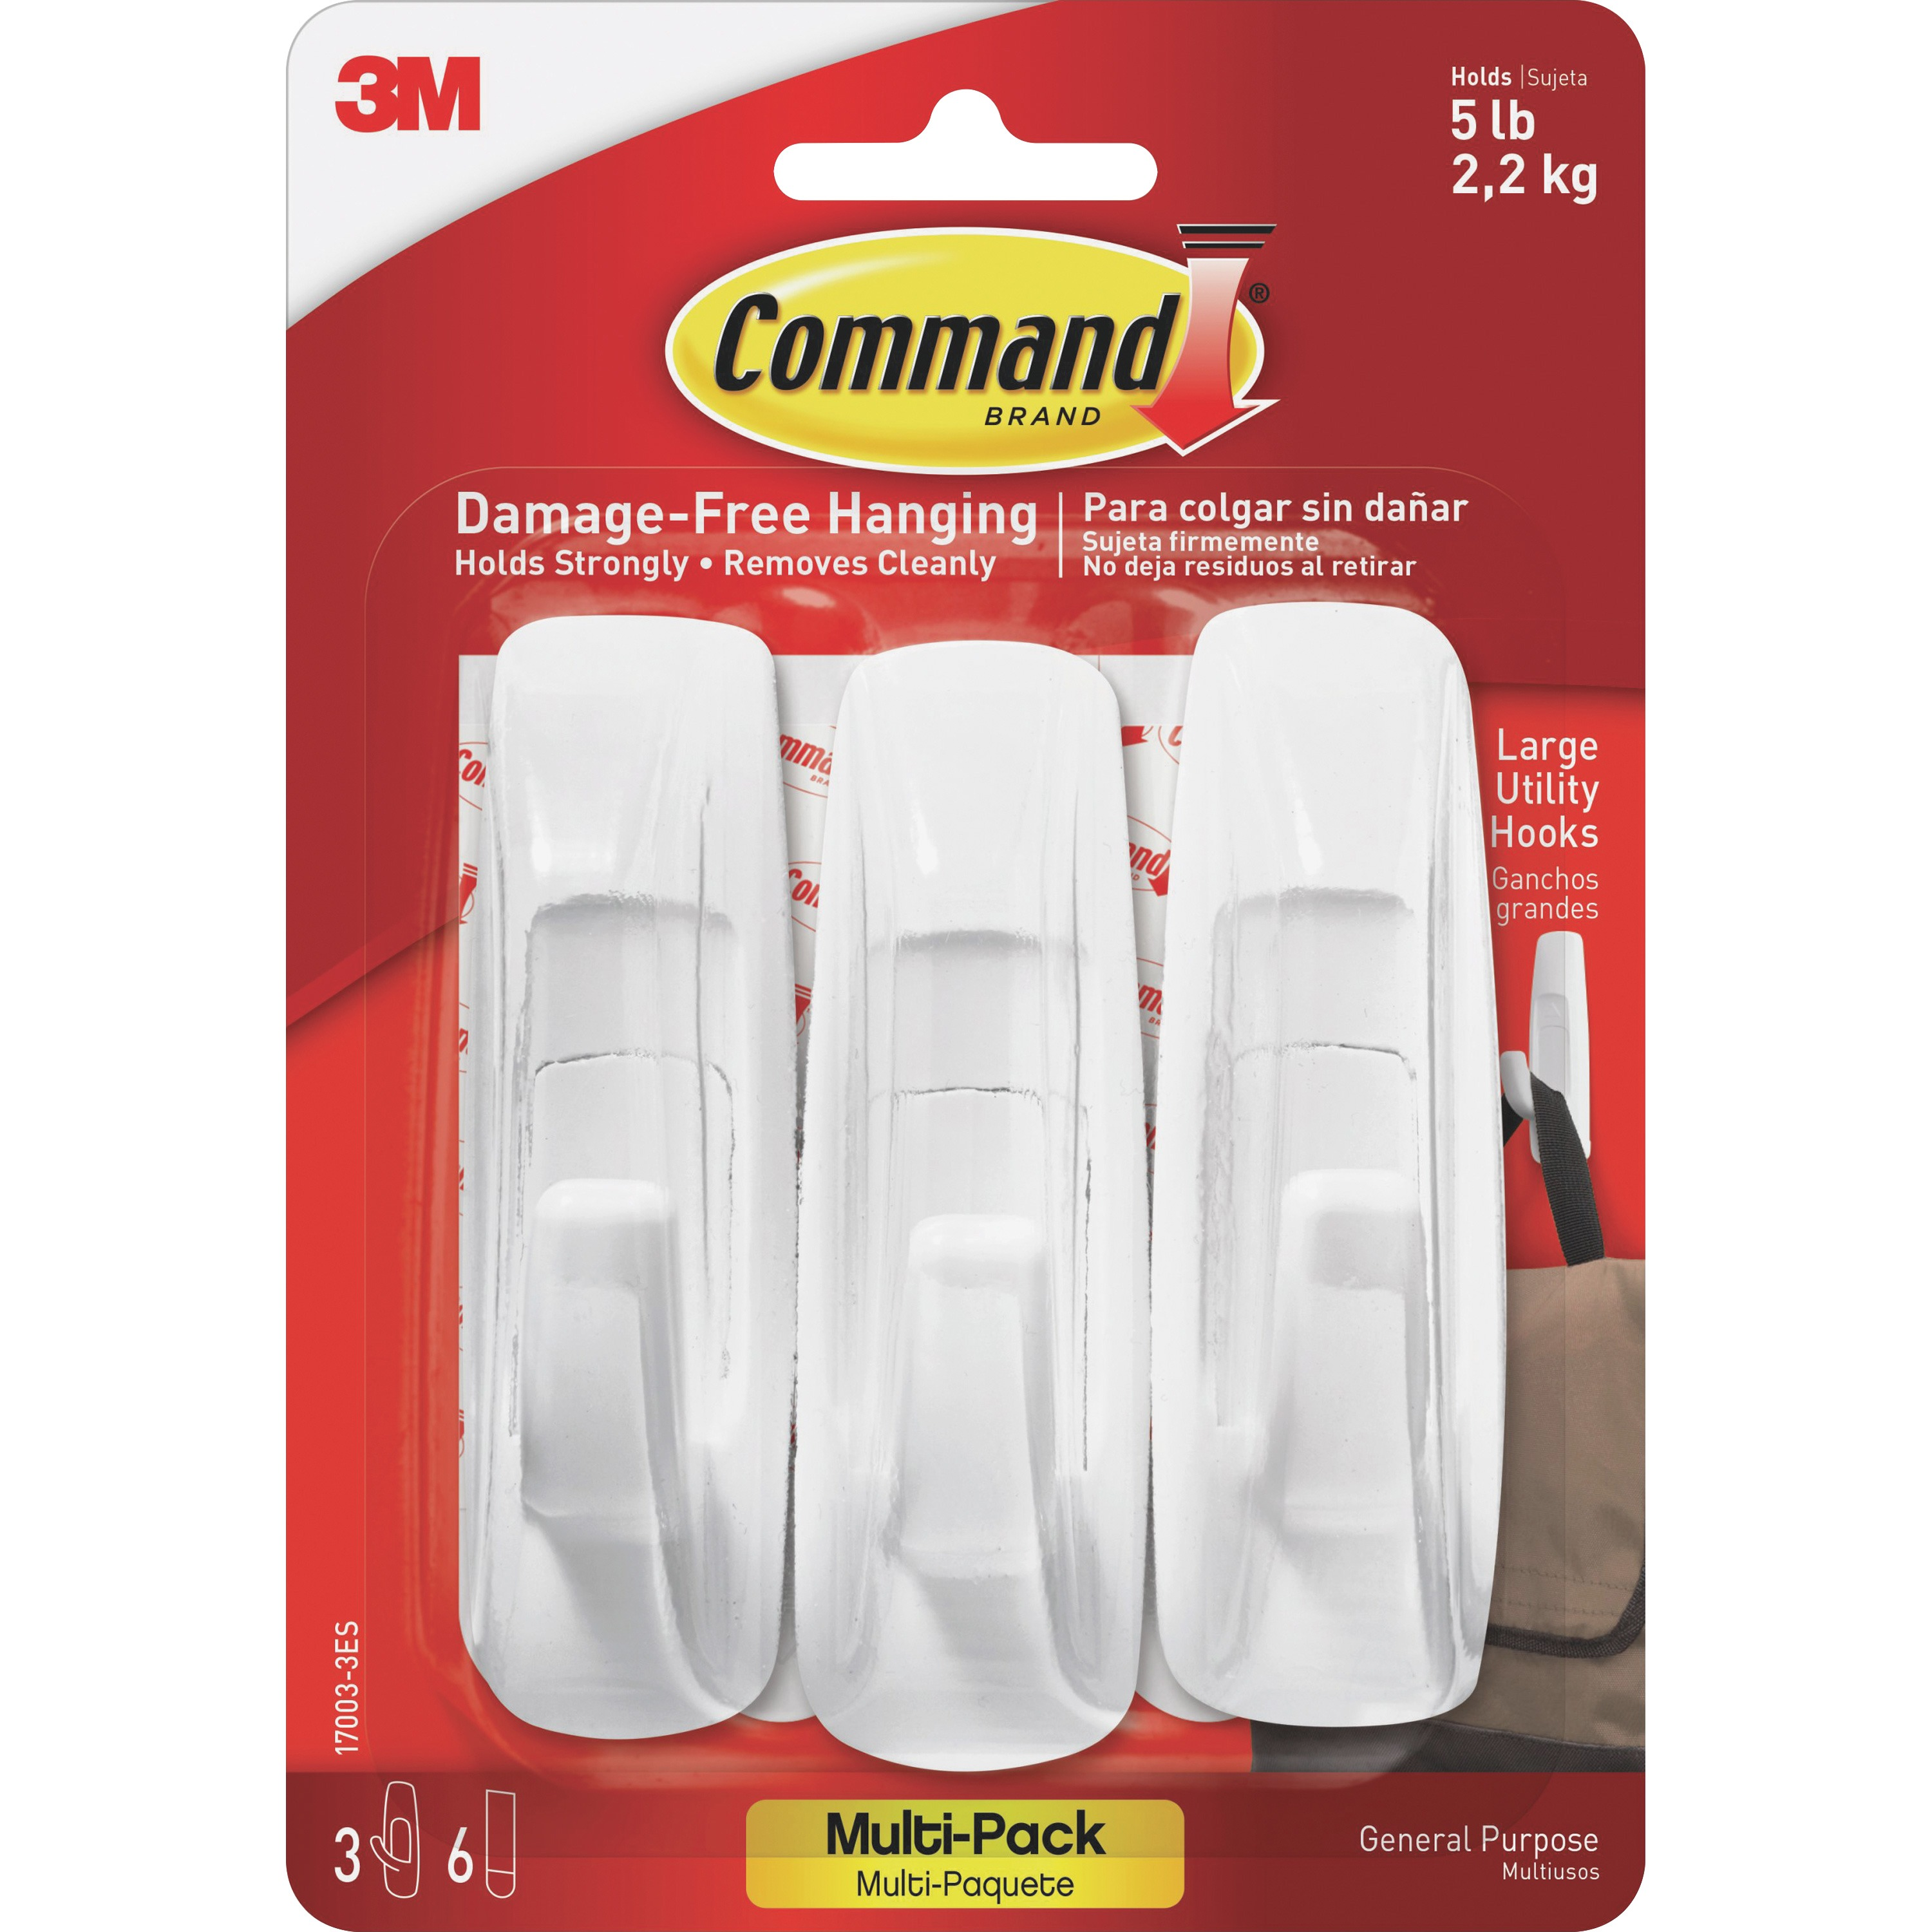 Command Utility Hook Value Pack, White, Large, 3 Hooks, 6 Strips/Pack